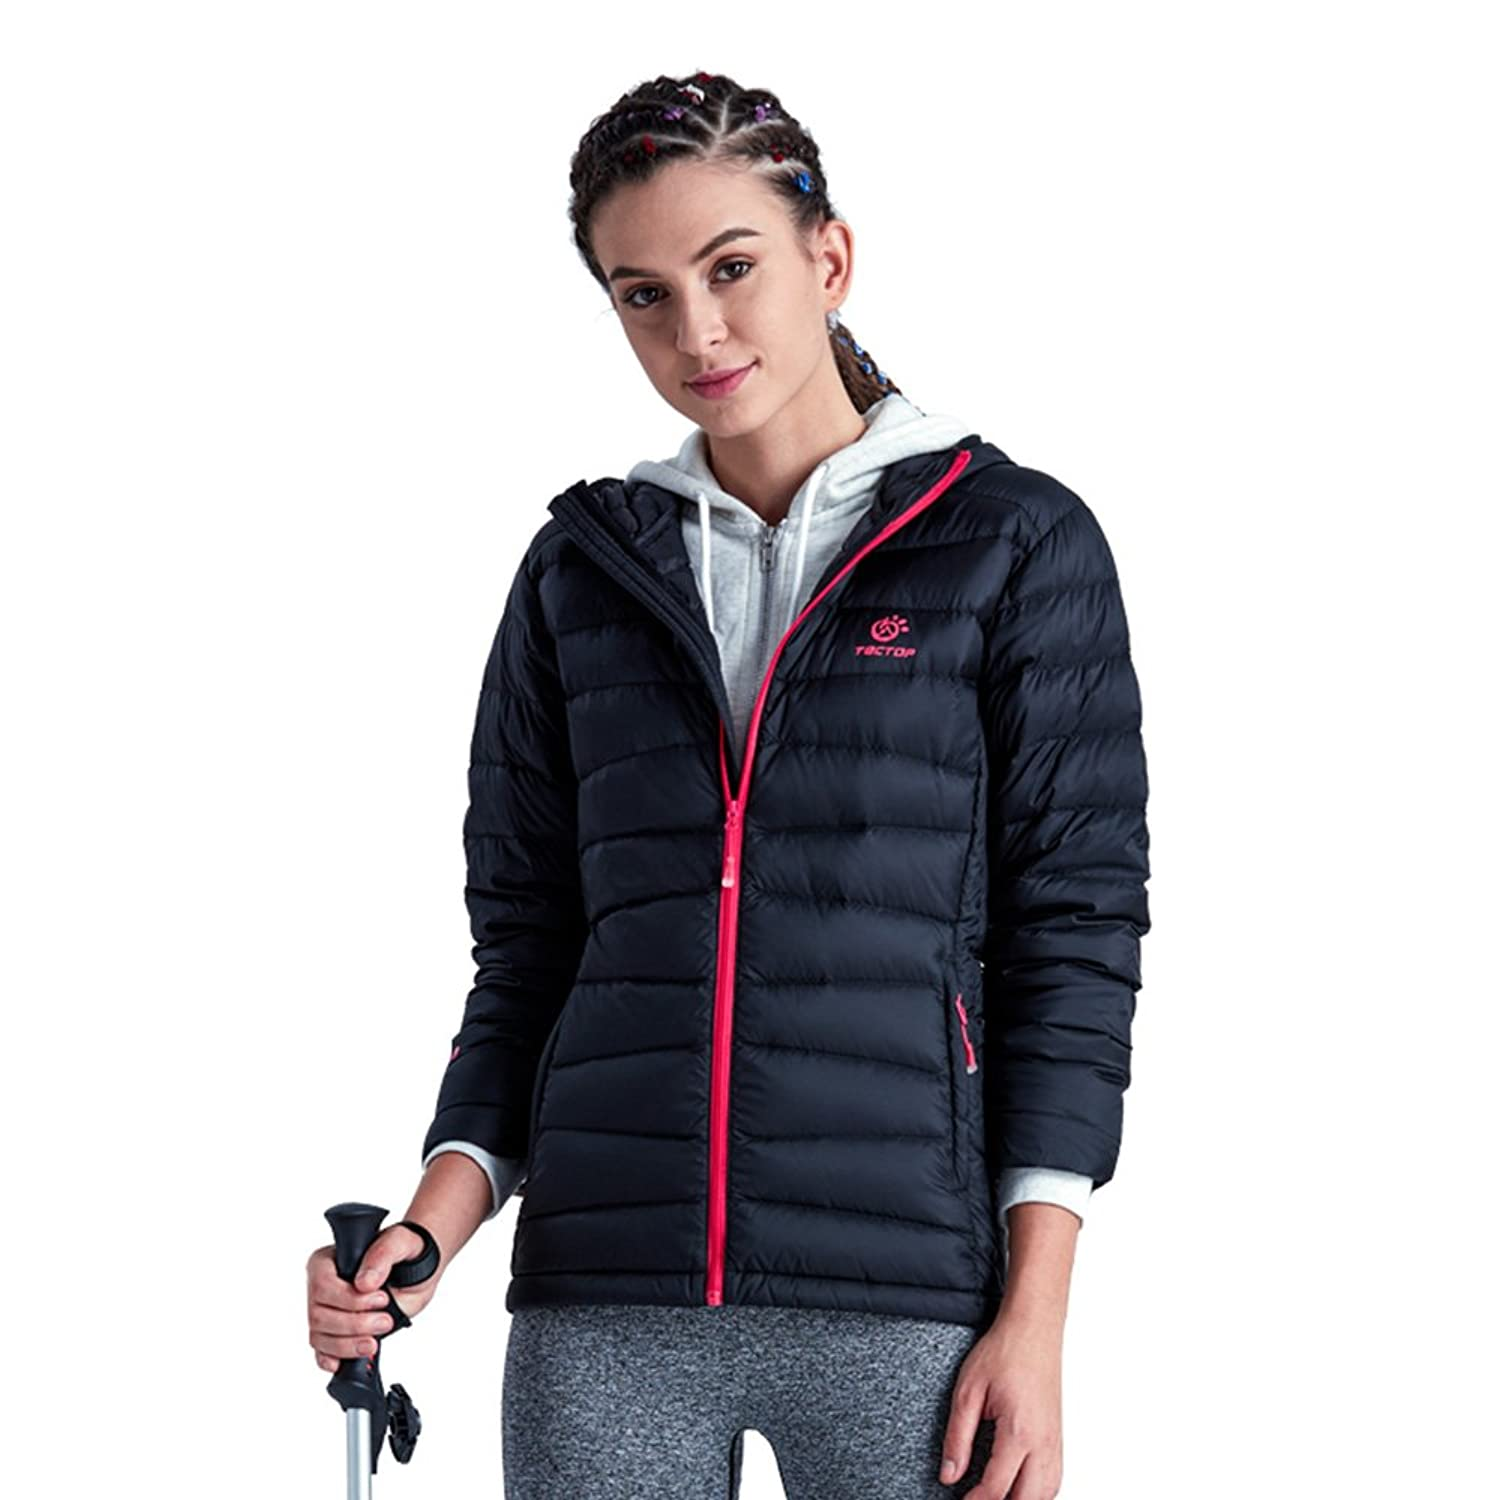 emansmoer Damen Winter Kapuze Ente Daunenjacke Ultraleicht Puffer Packable Mantel Winddicht Wasserdicht Outdoor Jacke